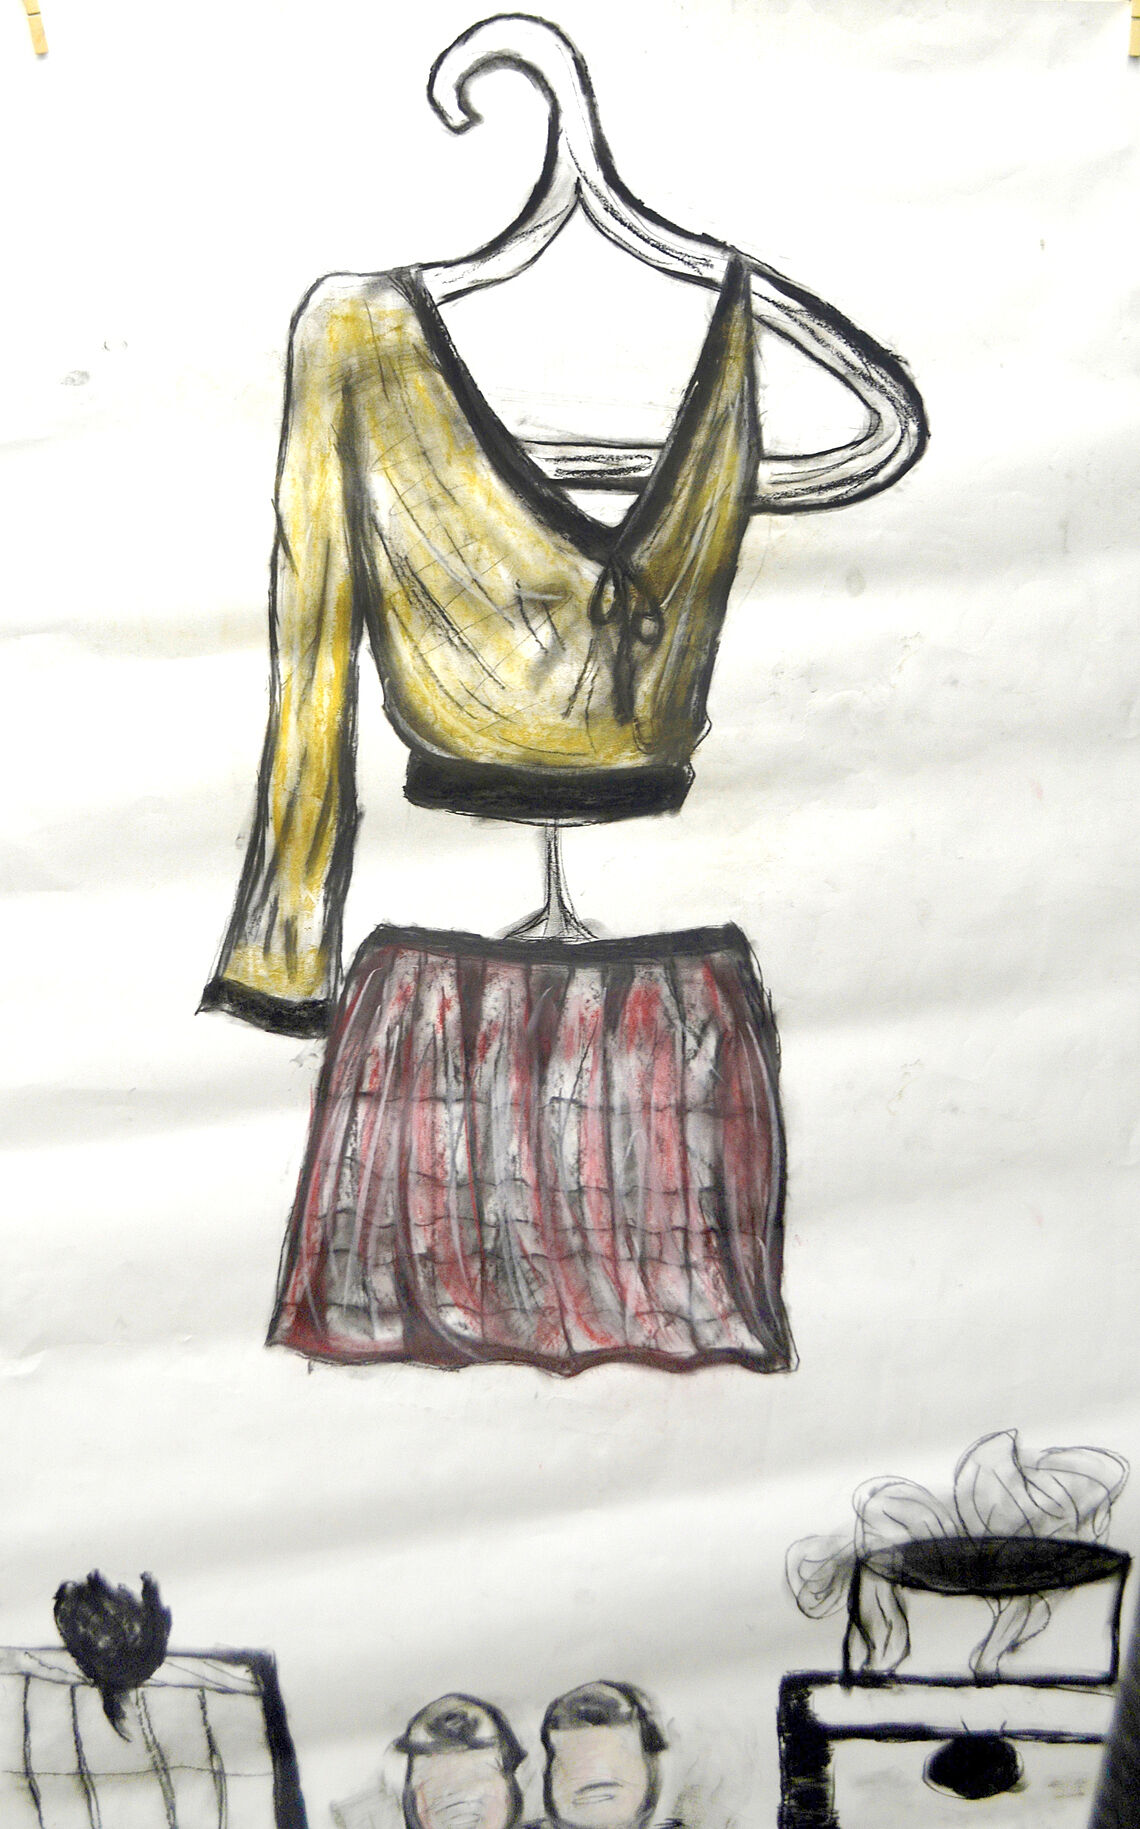 Drawing of an outfit with a gold top and red and black skirt.